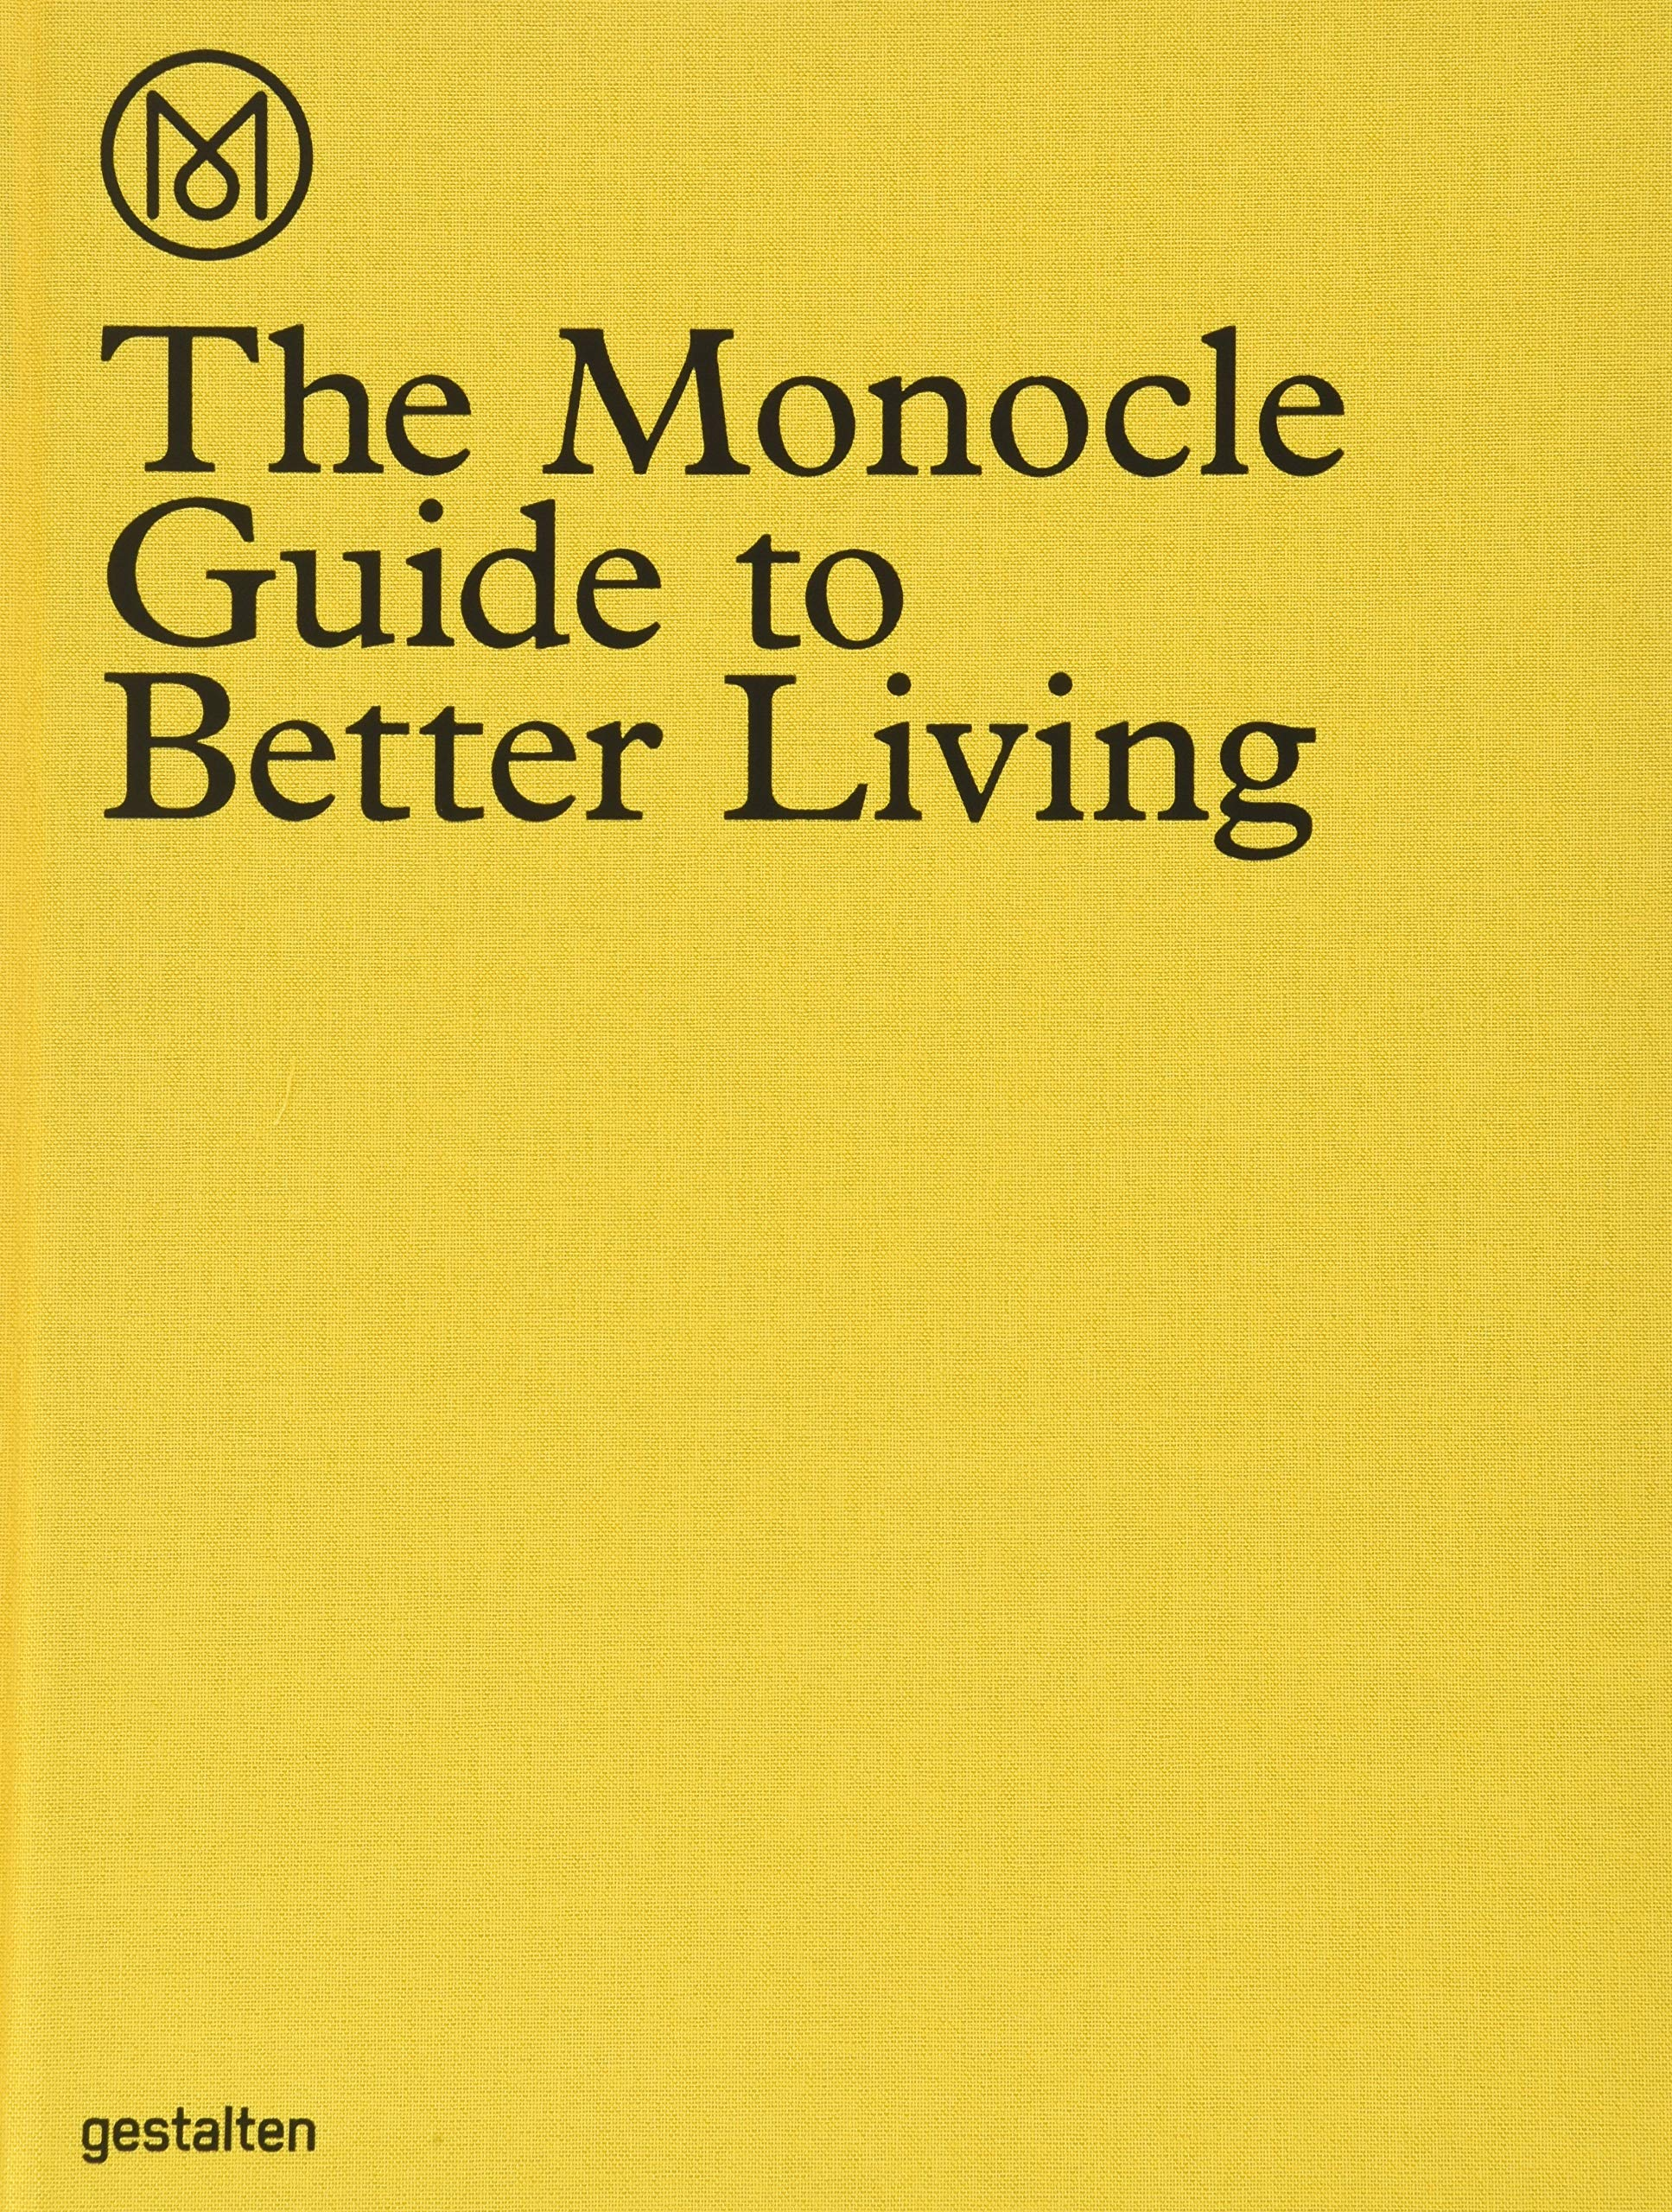 The Monocle Guide To Better Living: Amazon.es: Verlag, Die ...